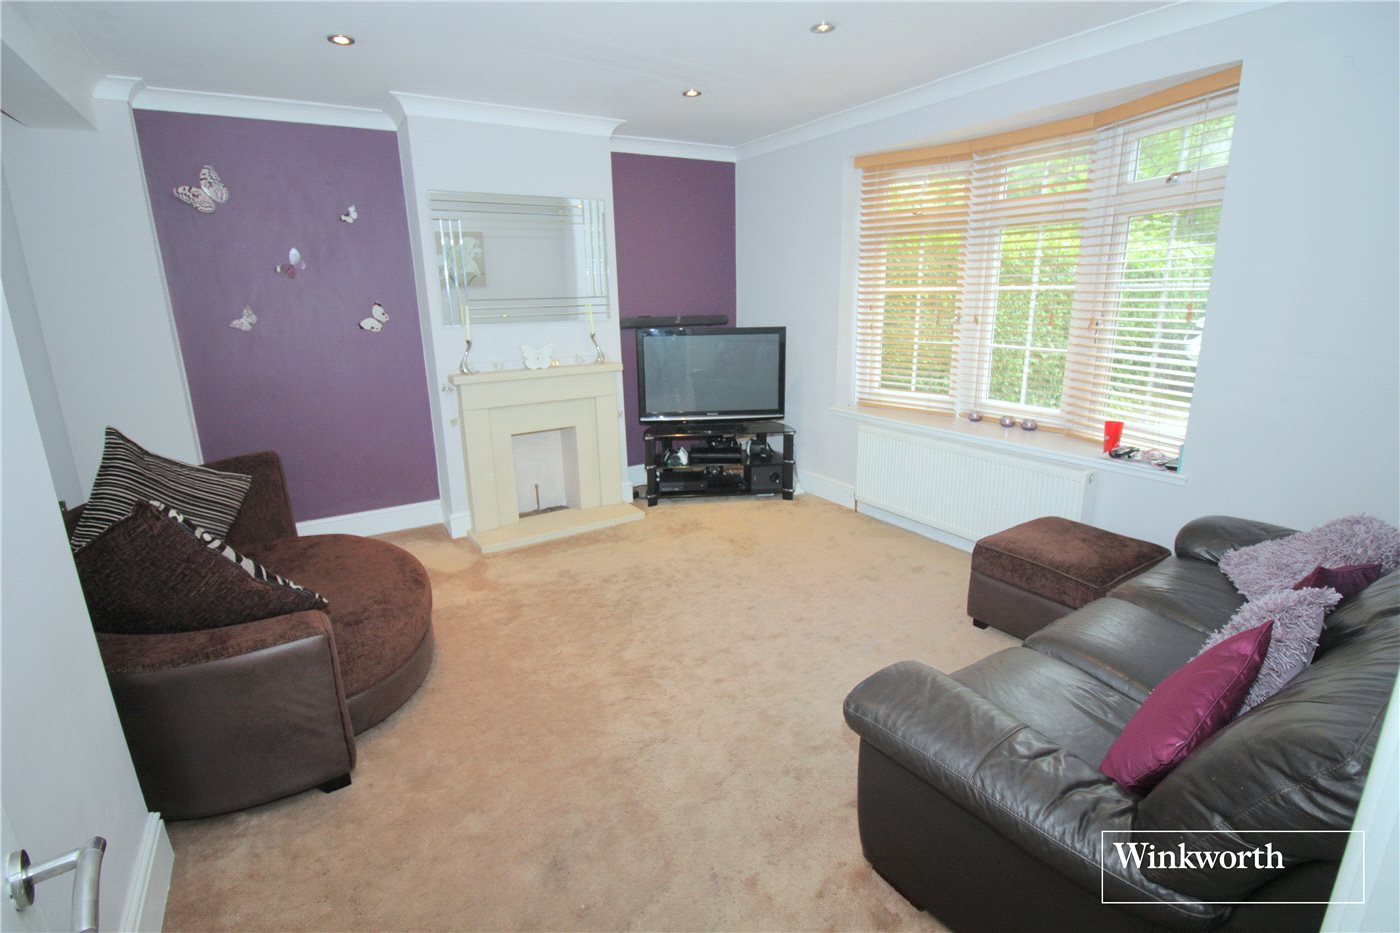 4 Bedrooms Semi Detached House for sale in Furzehill Road, Borehamwood, Hertfordshire, WD6